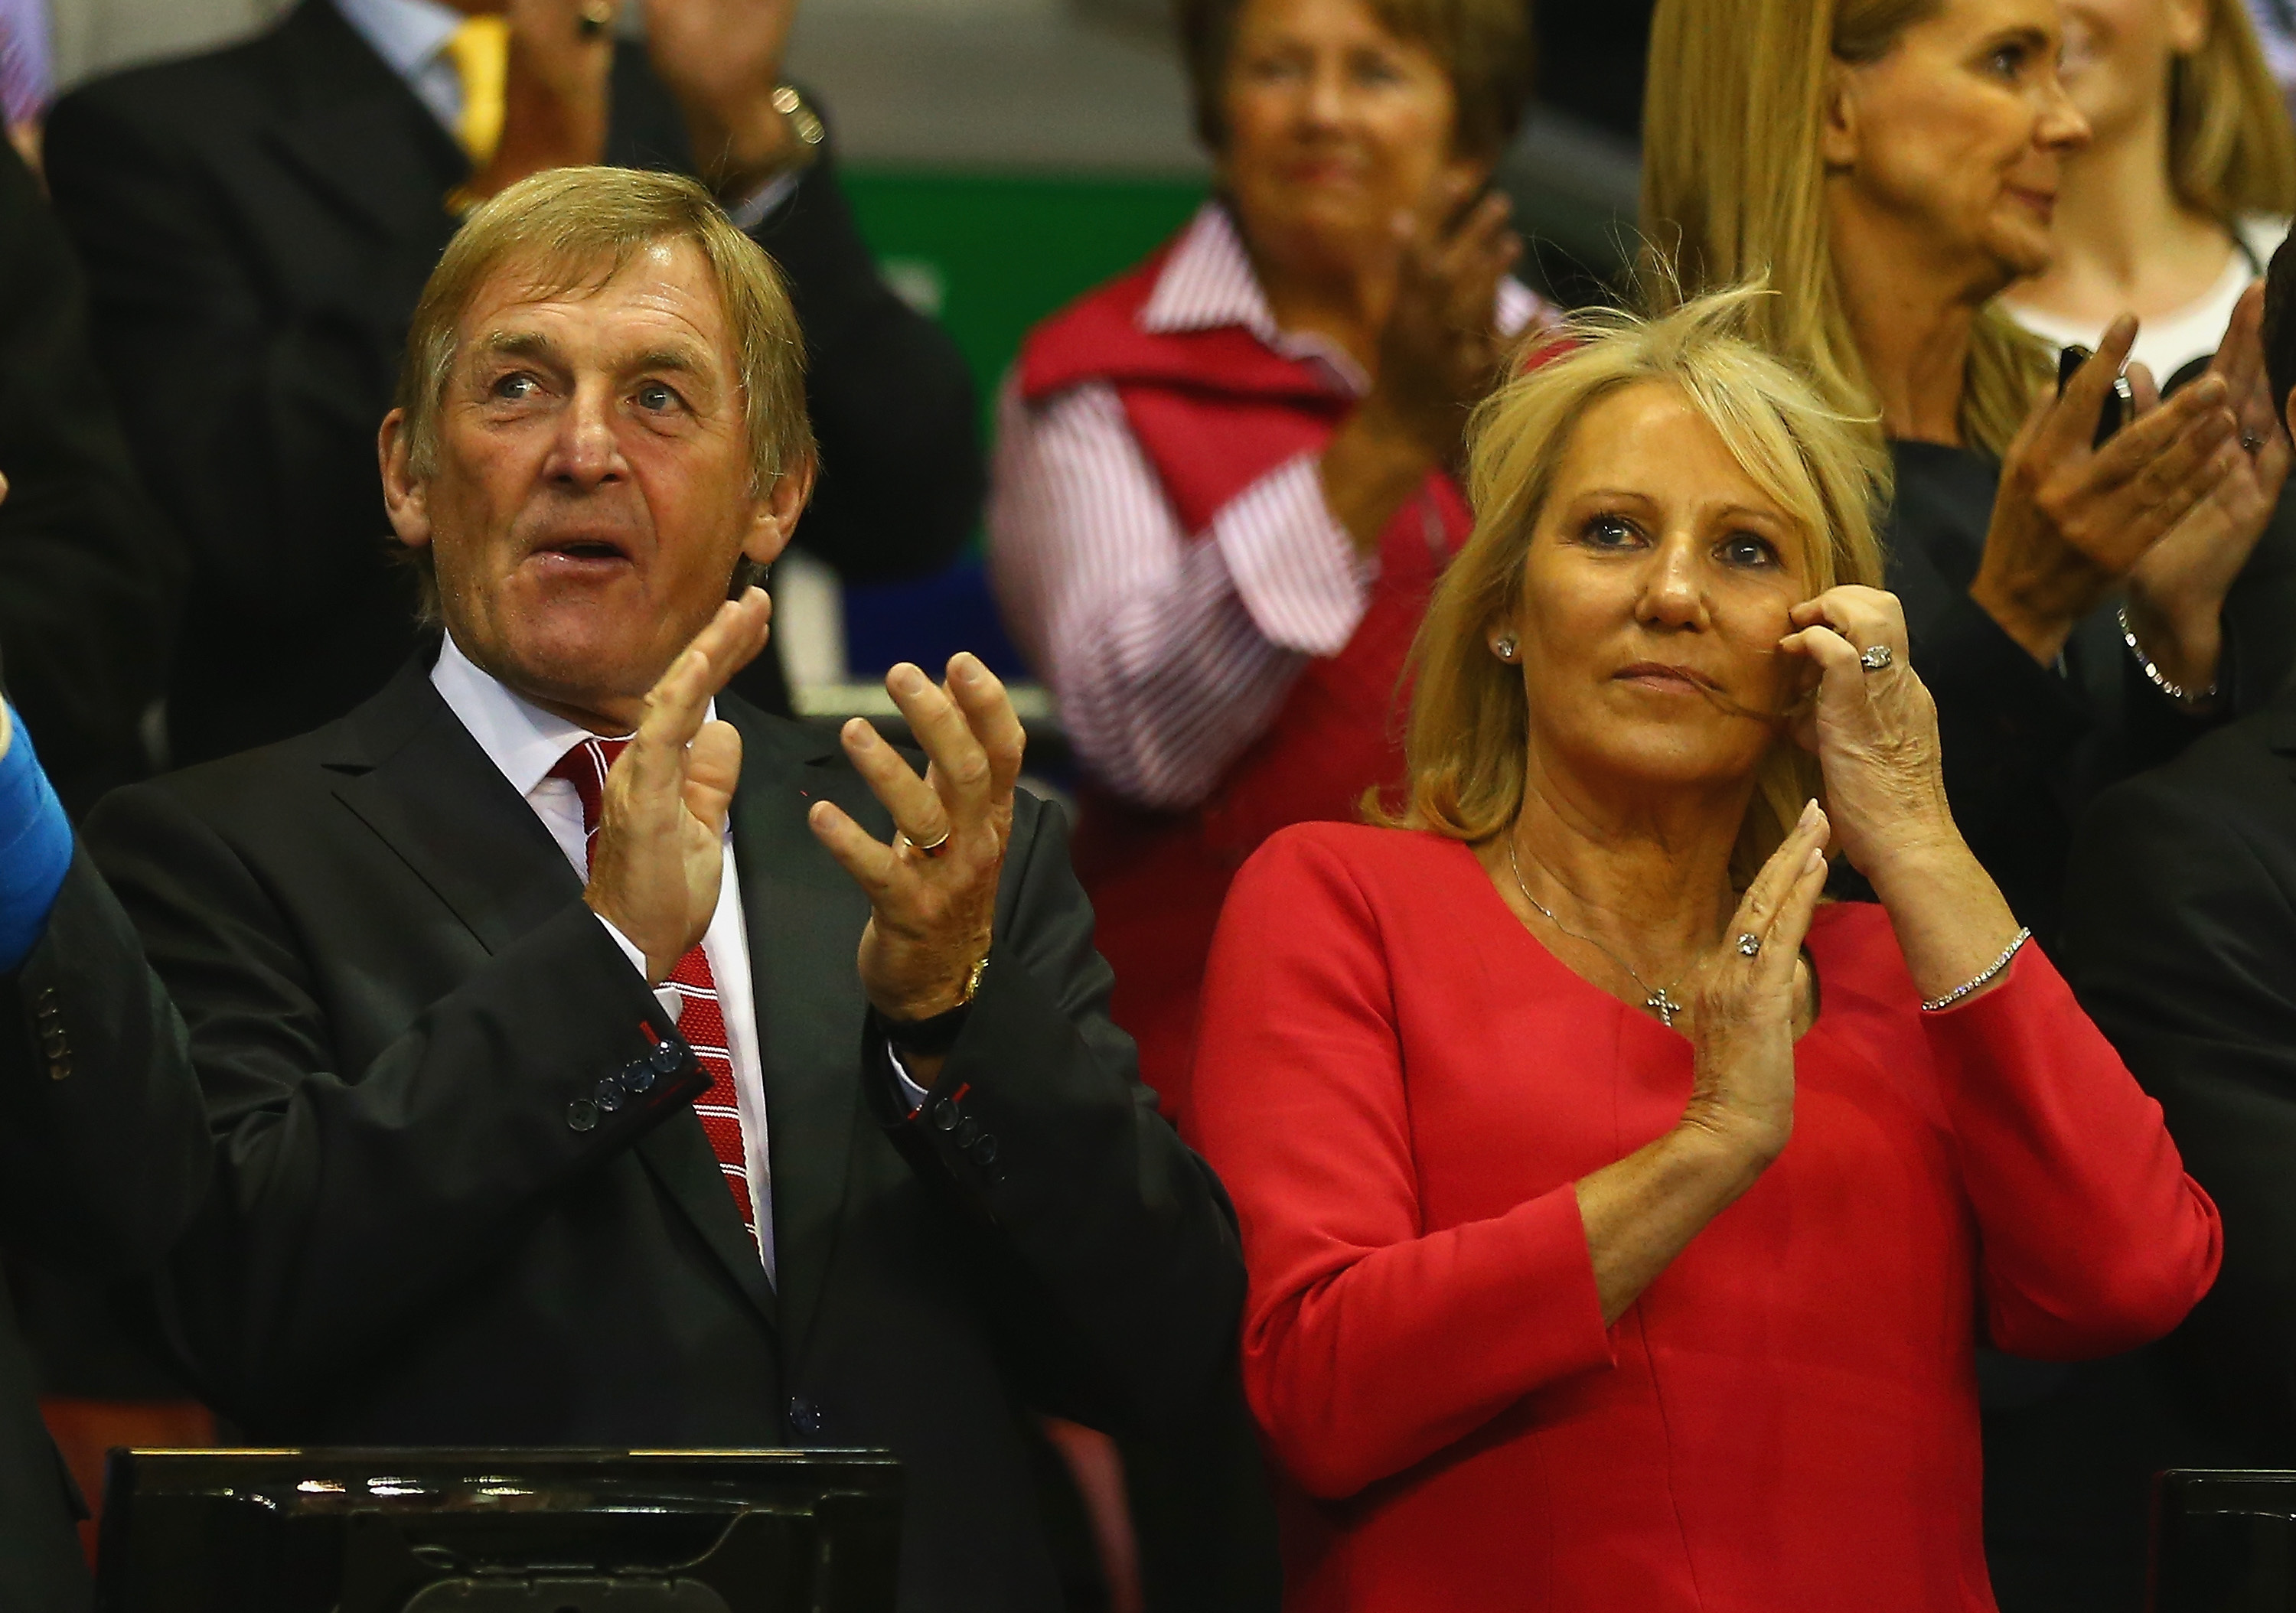 Kenny Dalglish and wife Marina (Clive Brunskill/Getty Images)